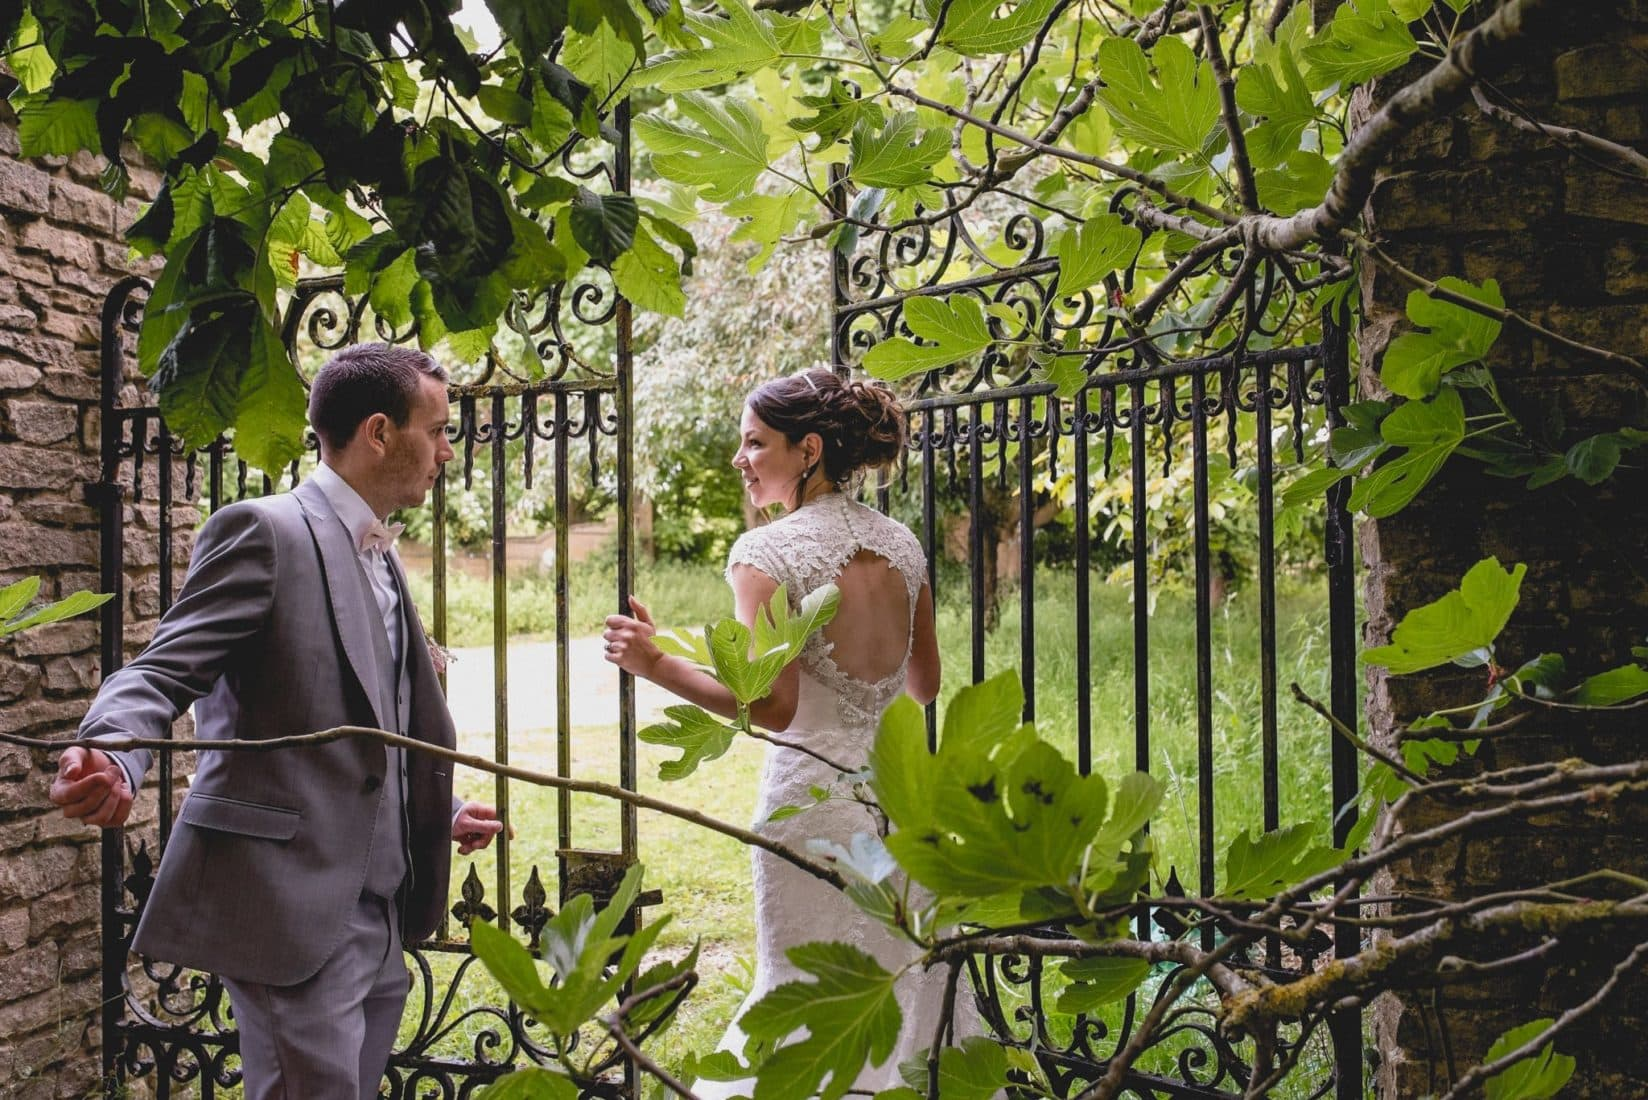 Bride and groom entering a secret garden gate